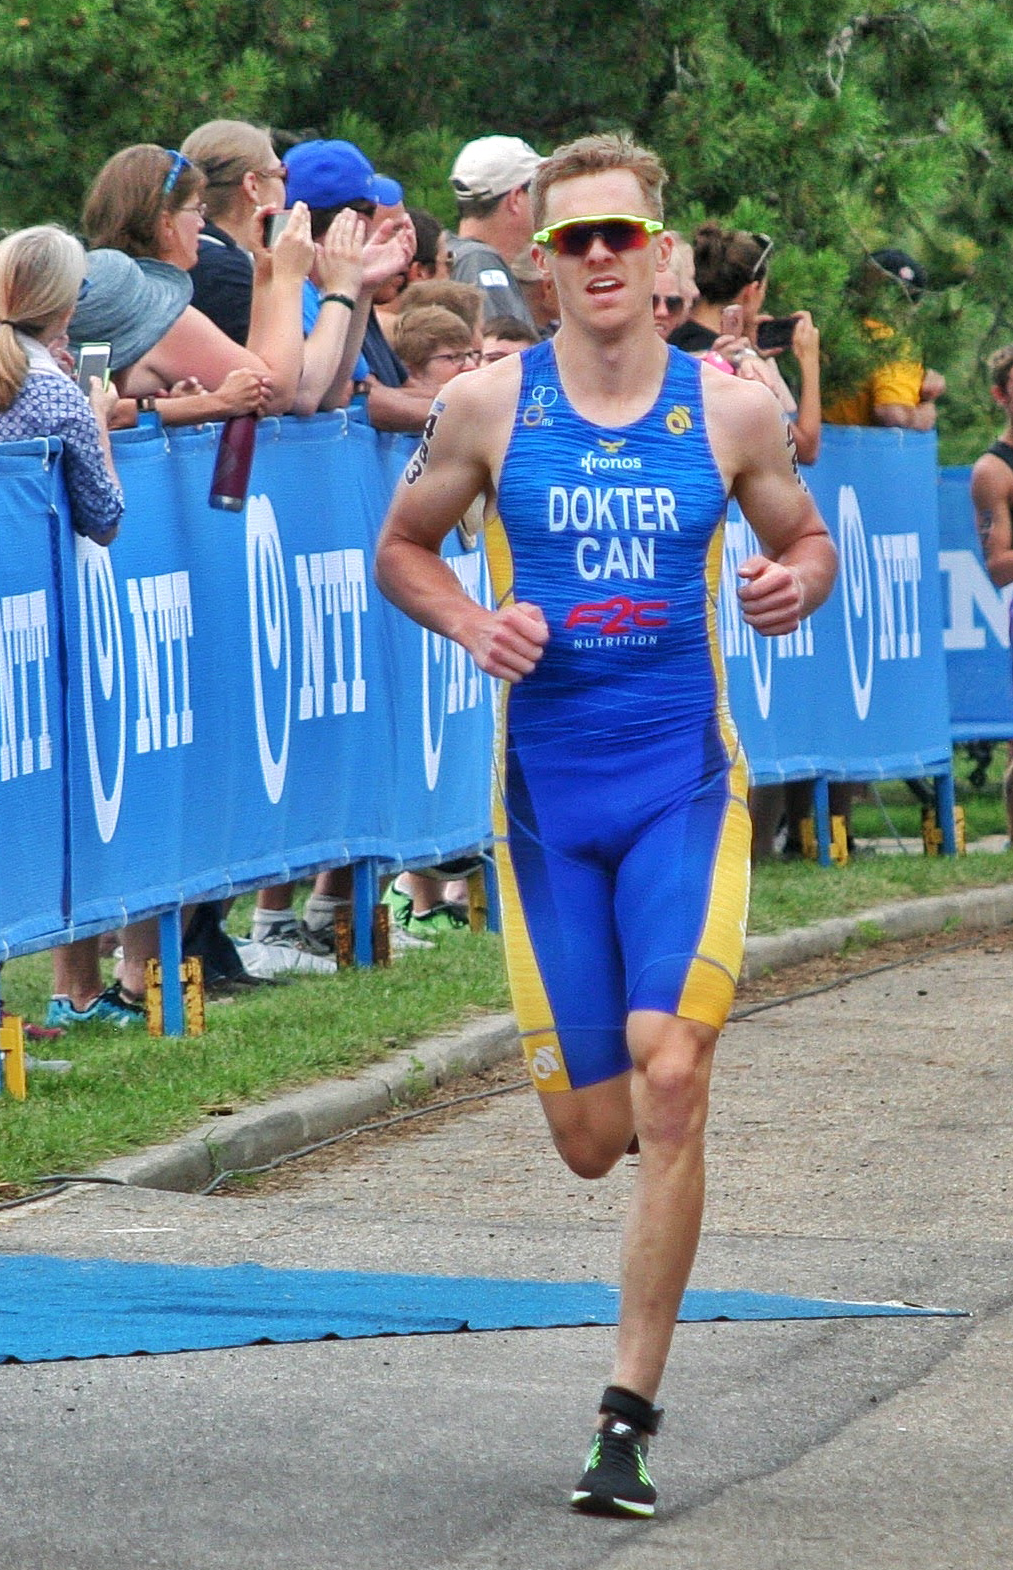 Eric Dokter T1 High Performance Triathlete